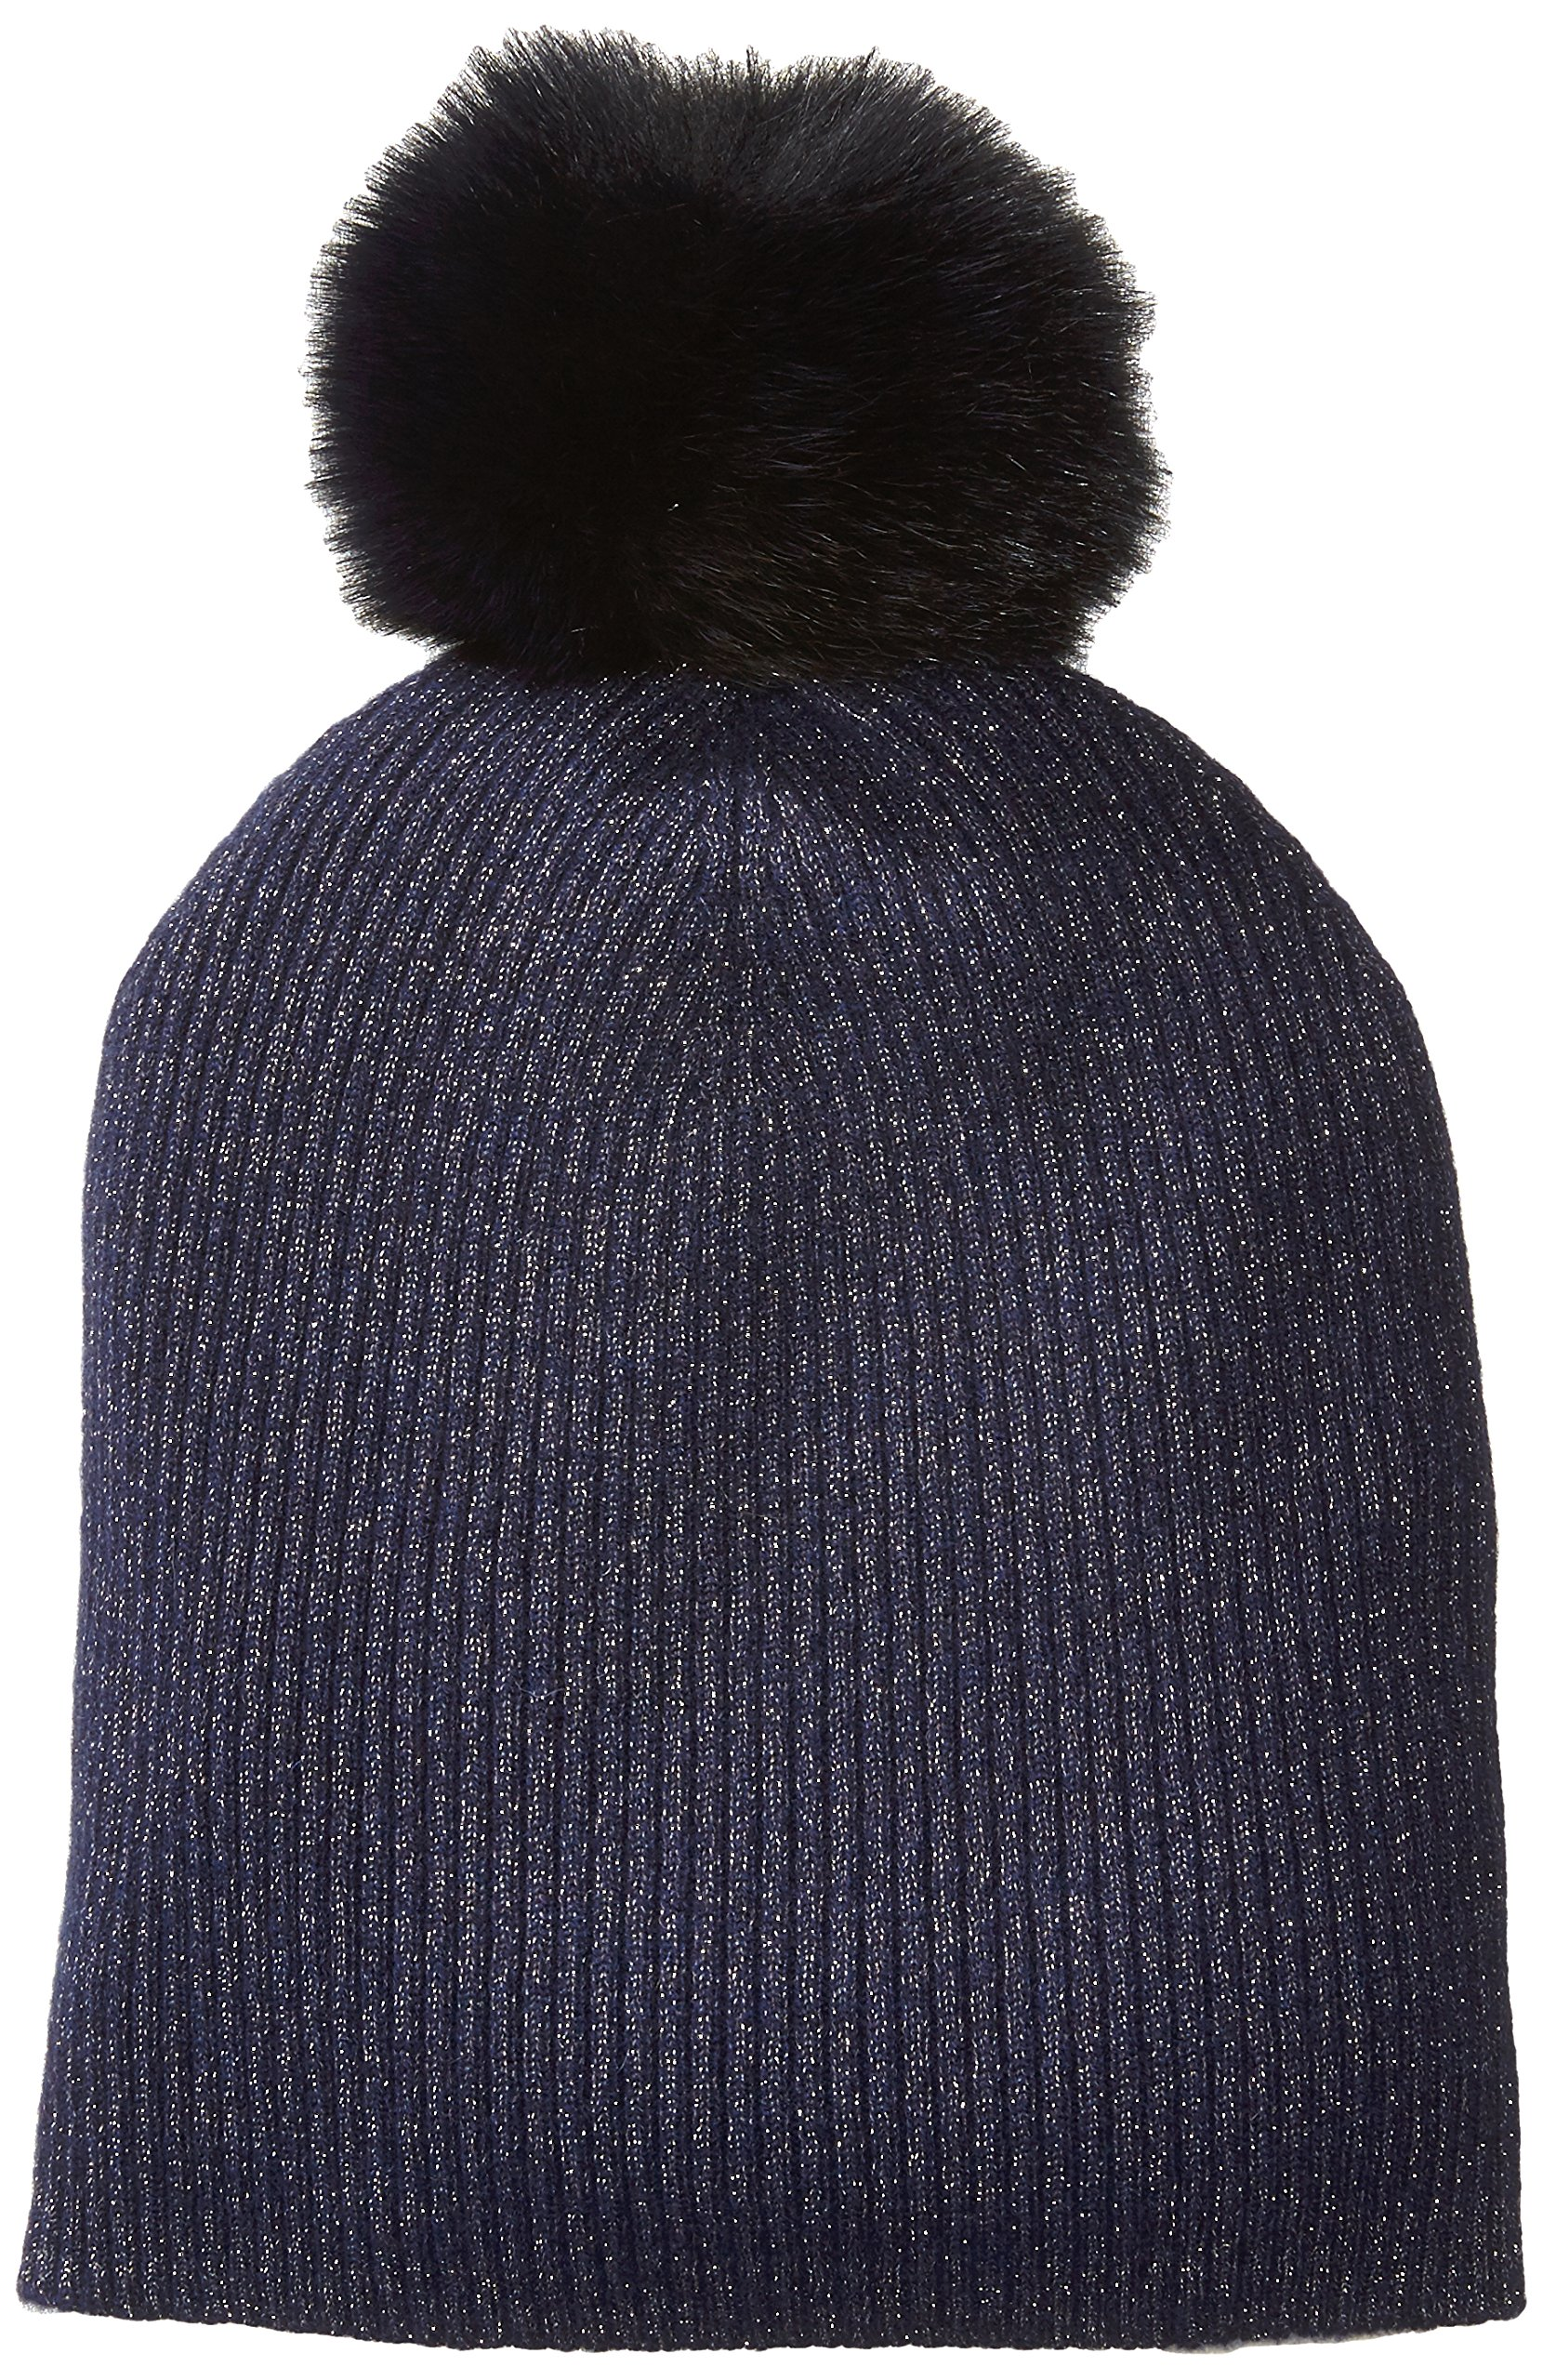 Sofia Cashmere Women's Cashmere Fur Pom Hat-Slouchy, Gold Lurex/Navy, ONE